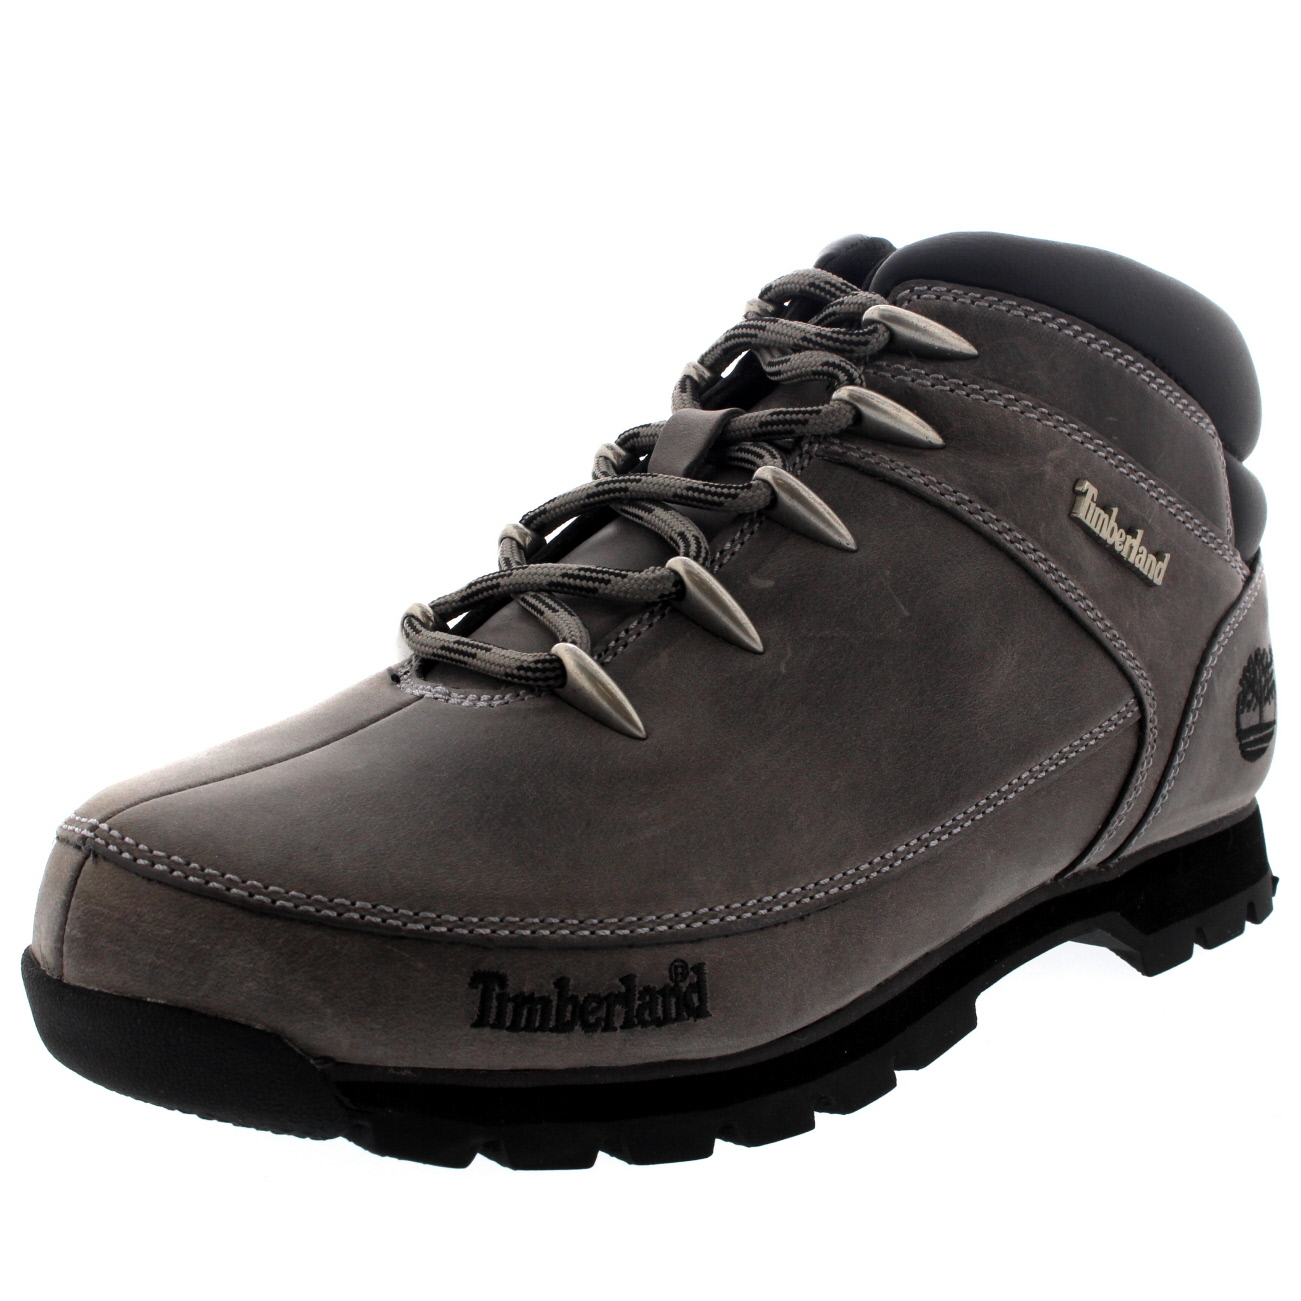 Timberland - Preferential Euro Sprint Hiker Boot :  Generous  For Sale